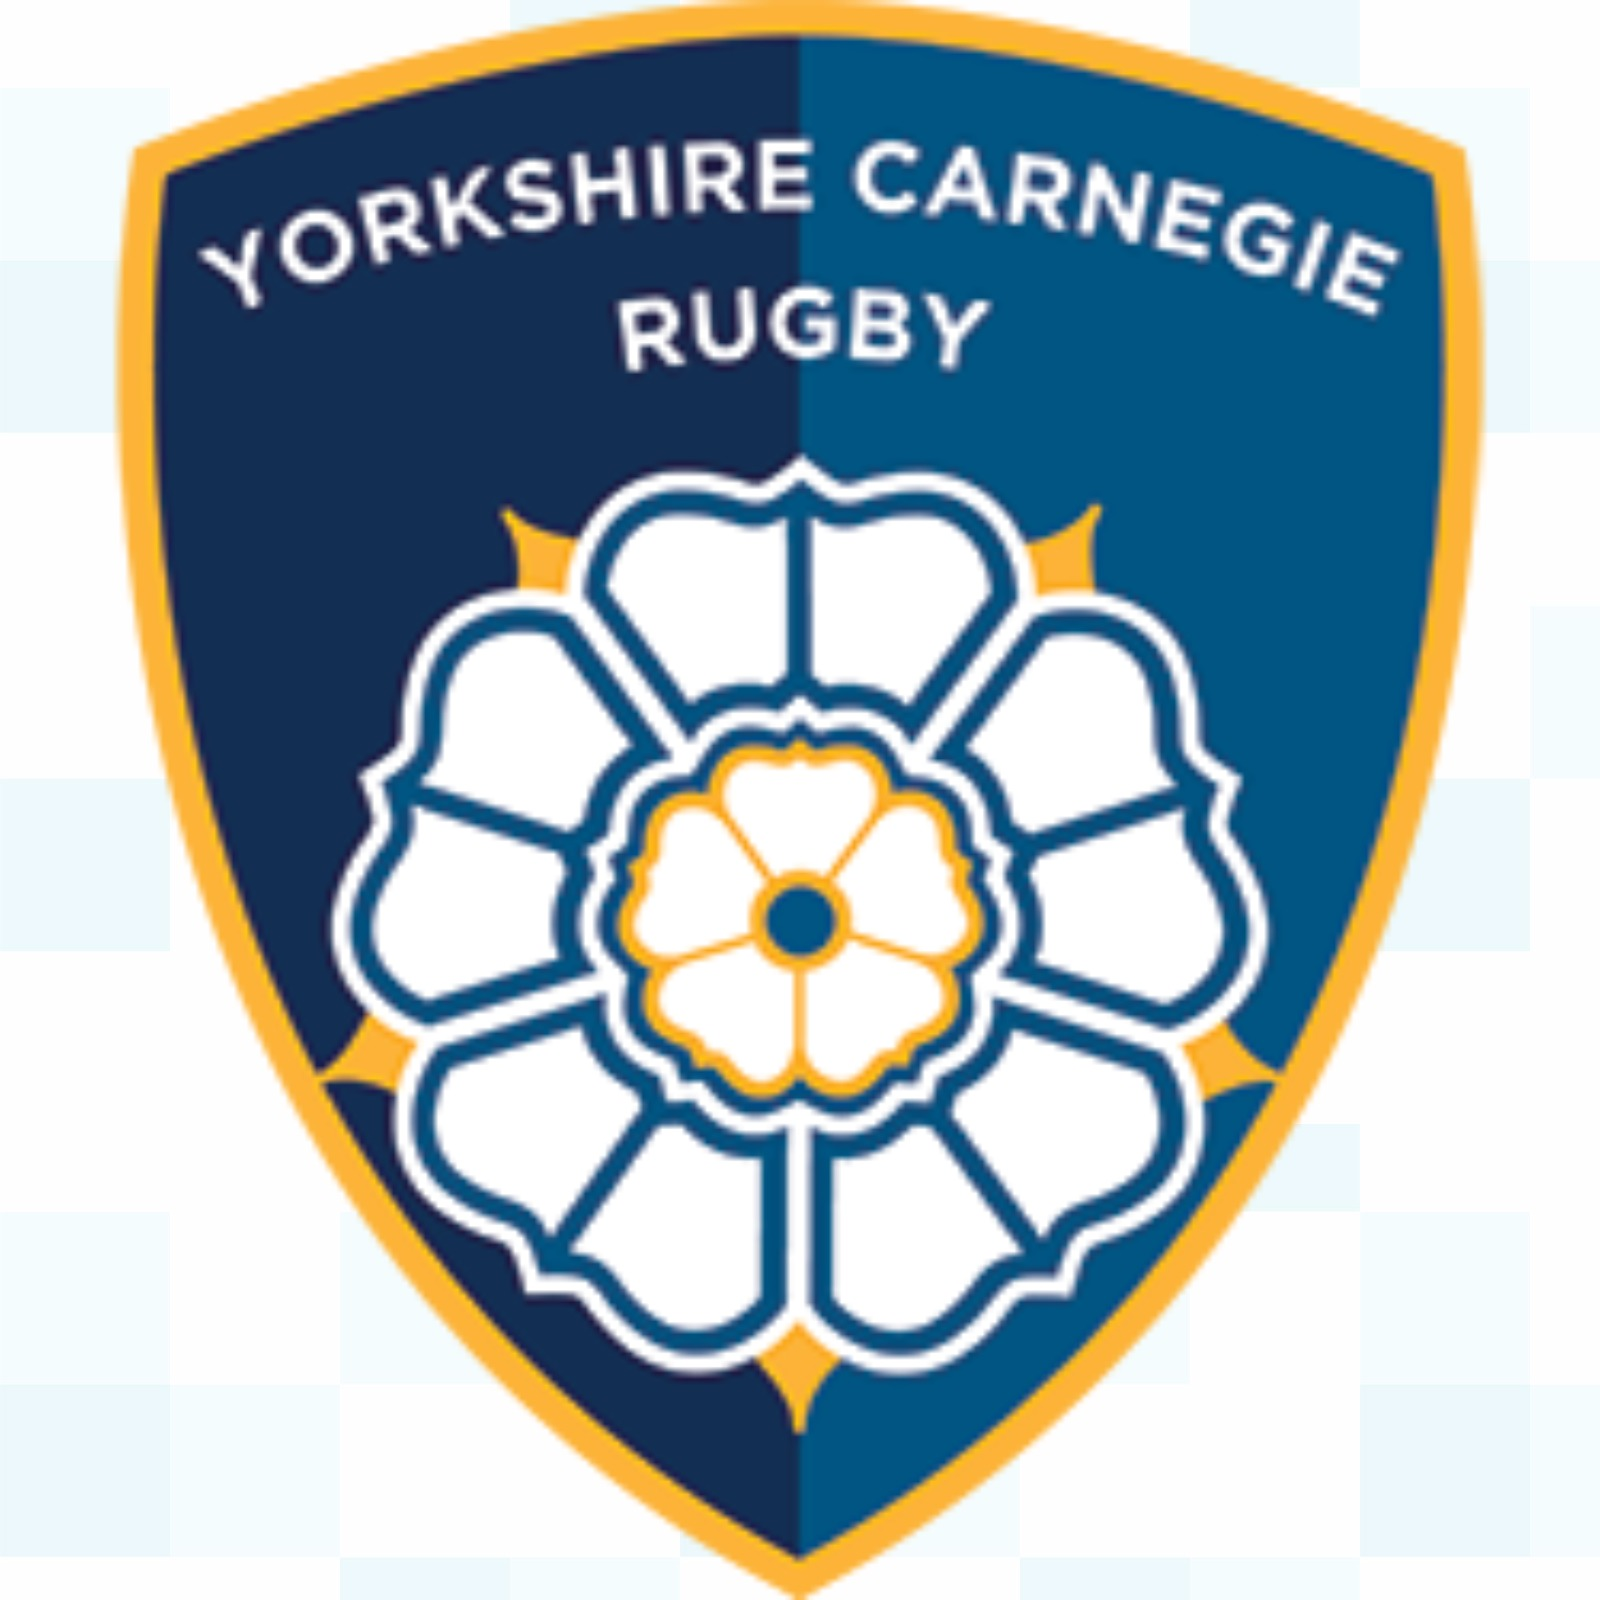 Our Logo Azerbaijan Rugby Union: Assistant Coach To Leave Yorkshire Carnegie